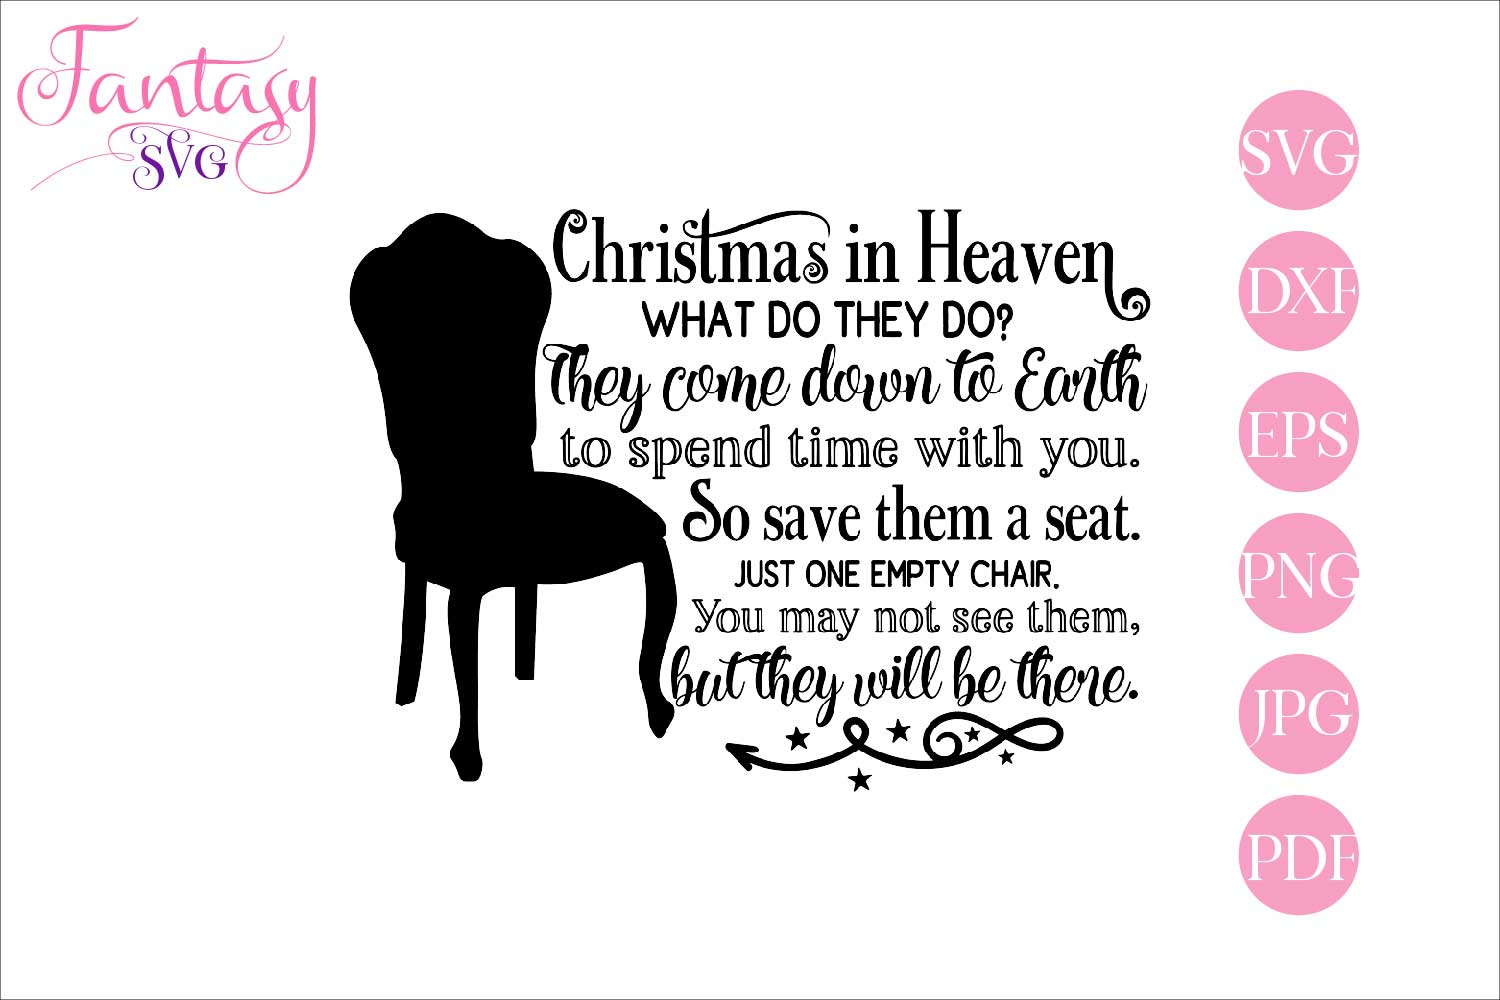 Download Free Christmas In Heaven Graphic By Fantasy Svg Creative Fabrica for Cricut Explore, Silhouette and other cutting machines.